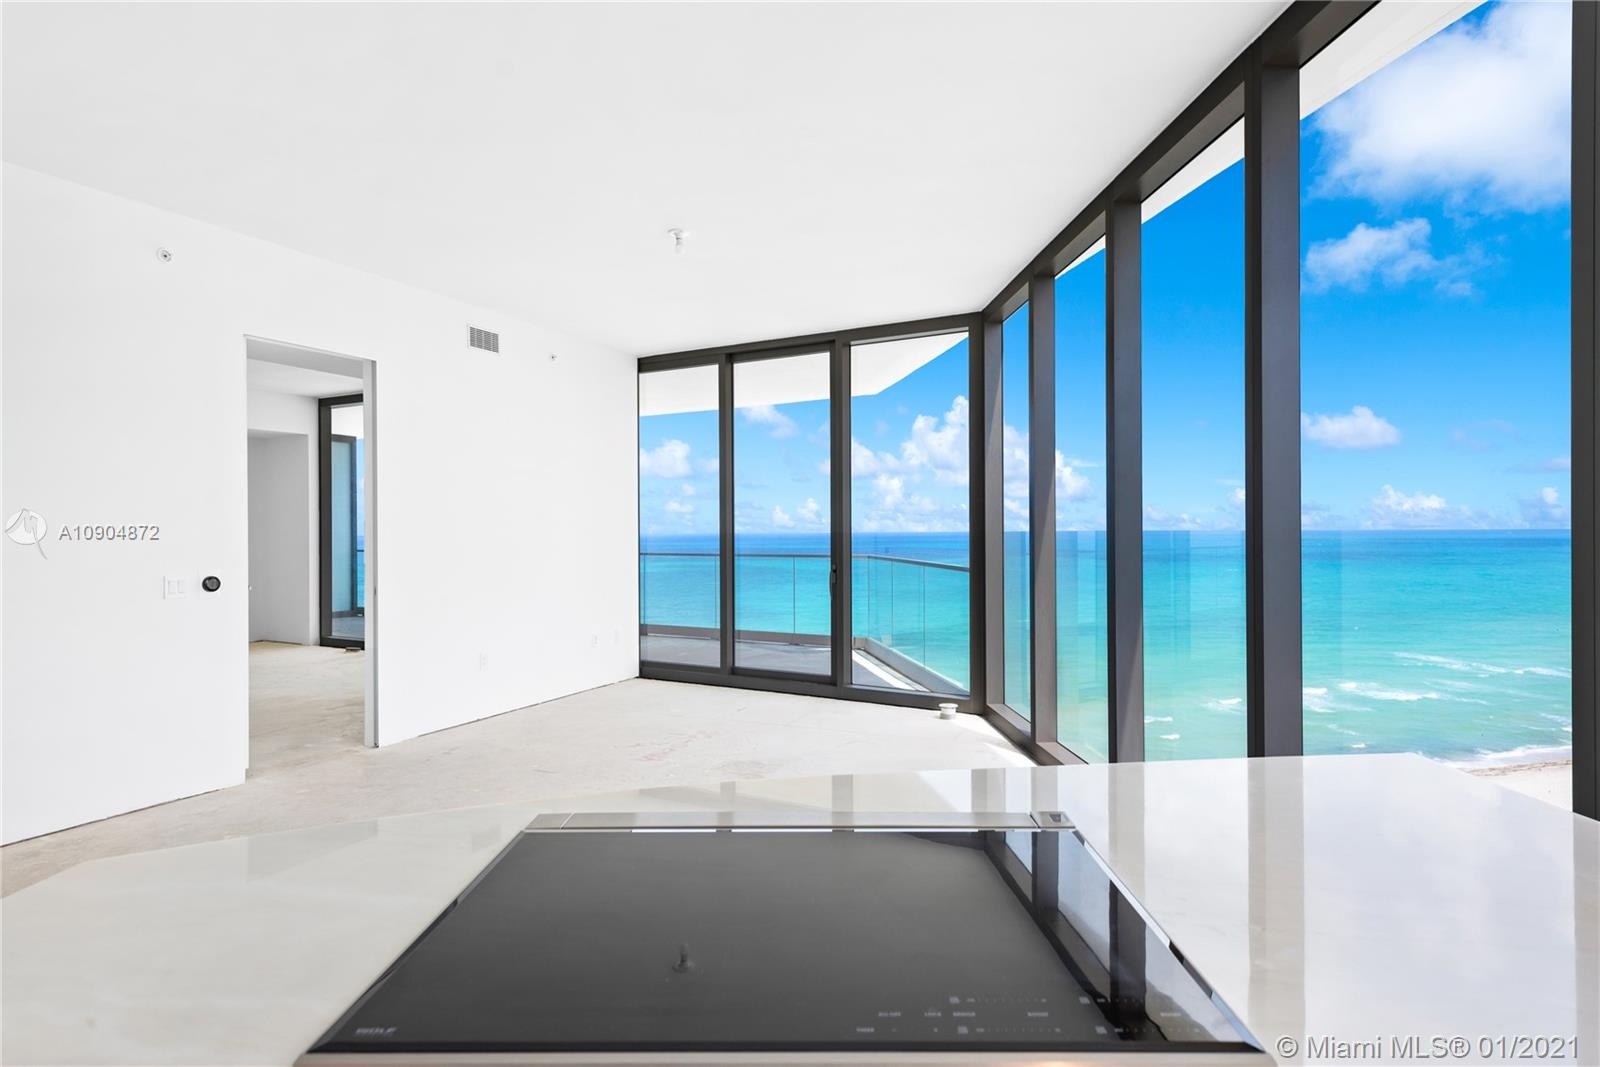 Armani Casa Tower #1204 - 18975 COLLINS AVE #1204, Sunny Isles Beach, FL 33160